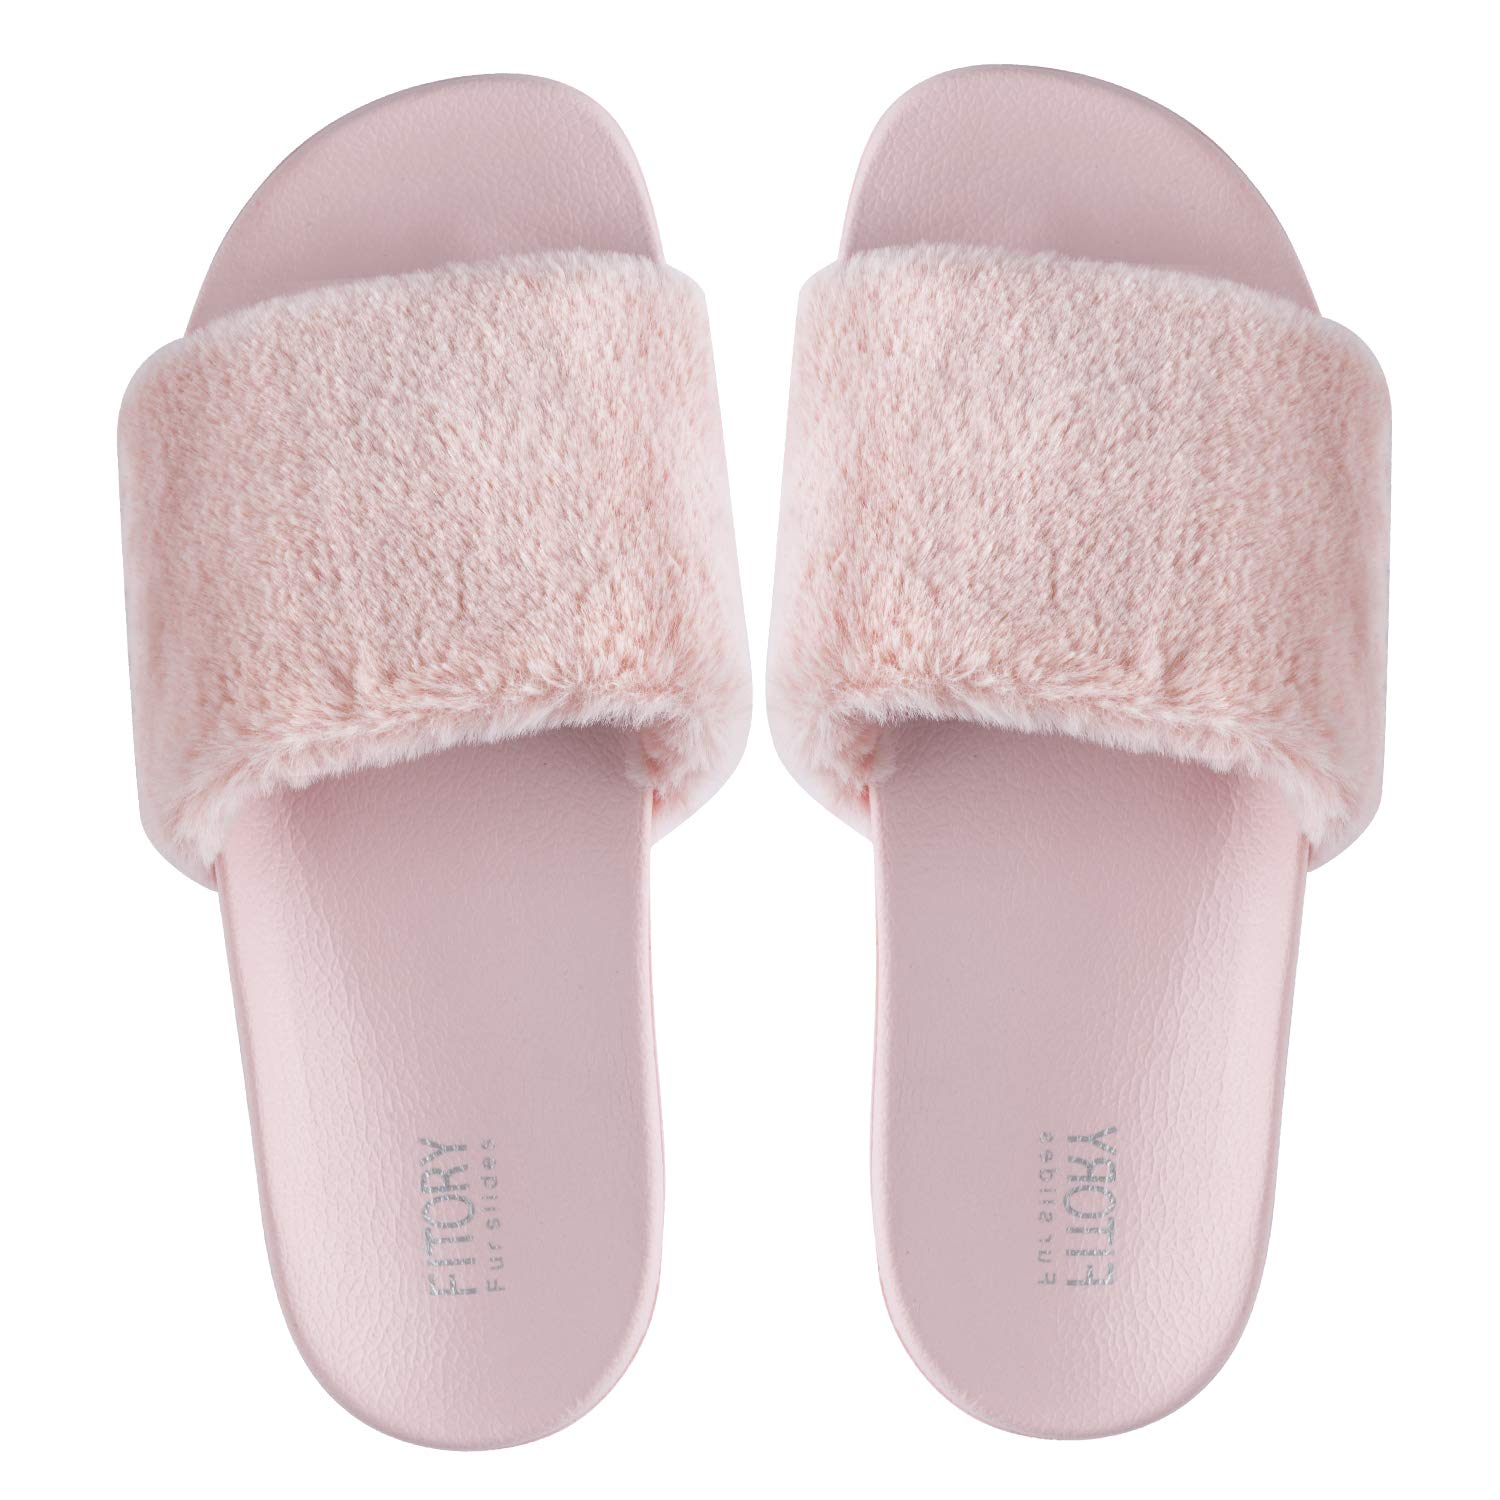 7fc58b8cb FITORY Women Slides Slippers, Faux Fur Slide Slip On Flats Sandals with  Arch Support Open ...